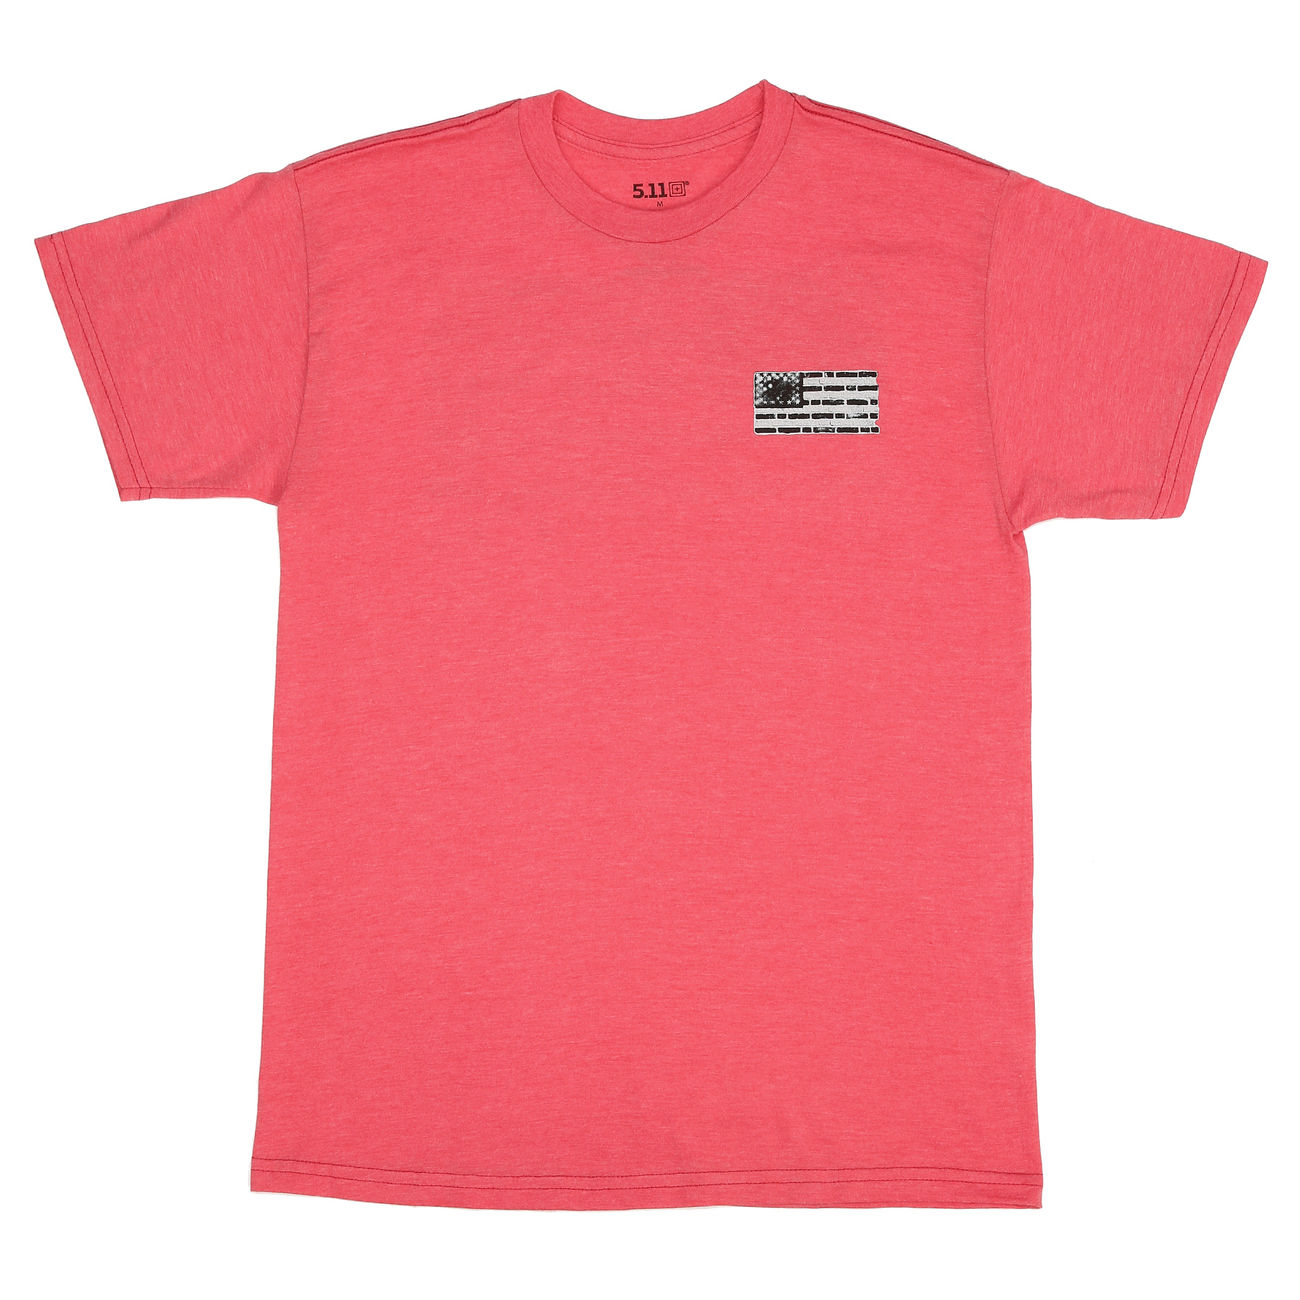 5.11 T-Shirt Bricks and Mortar Tee red heather 0